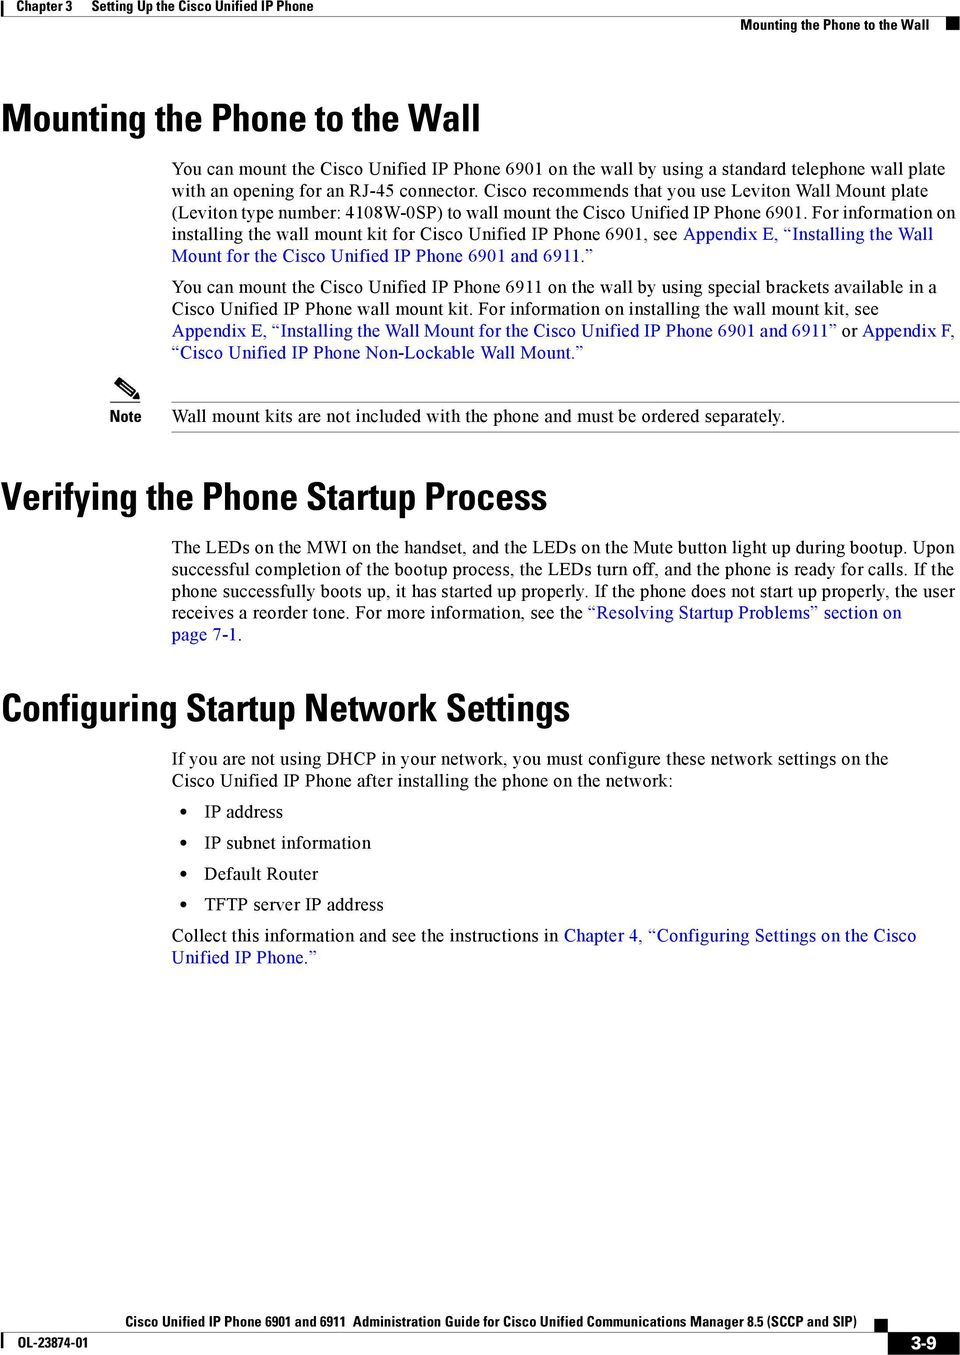 Setting Up the Cisco Unified IP Phone - PDF